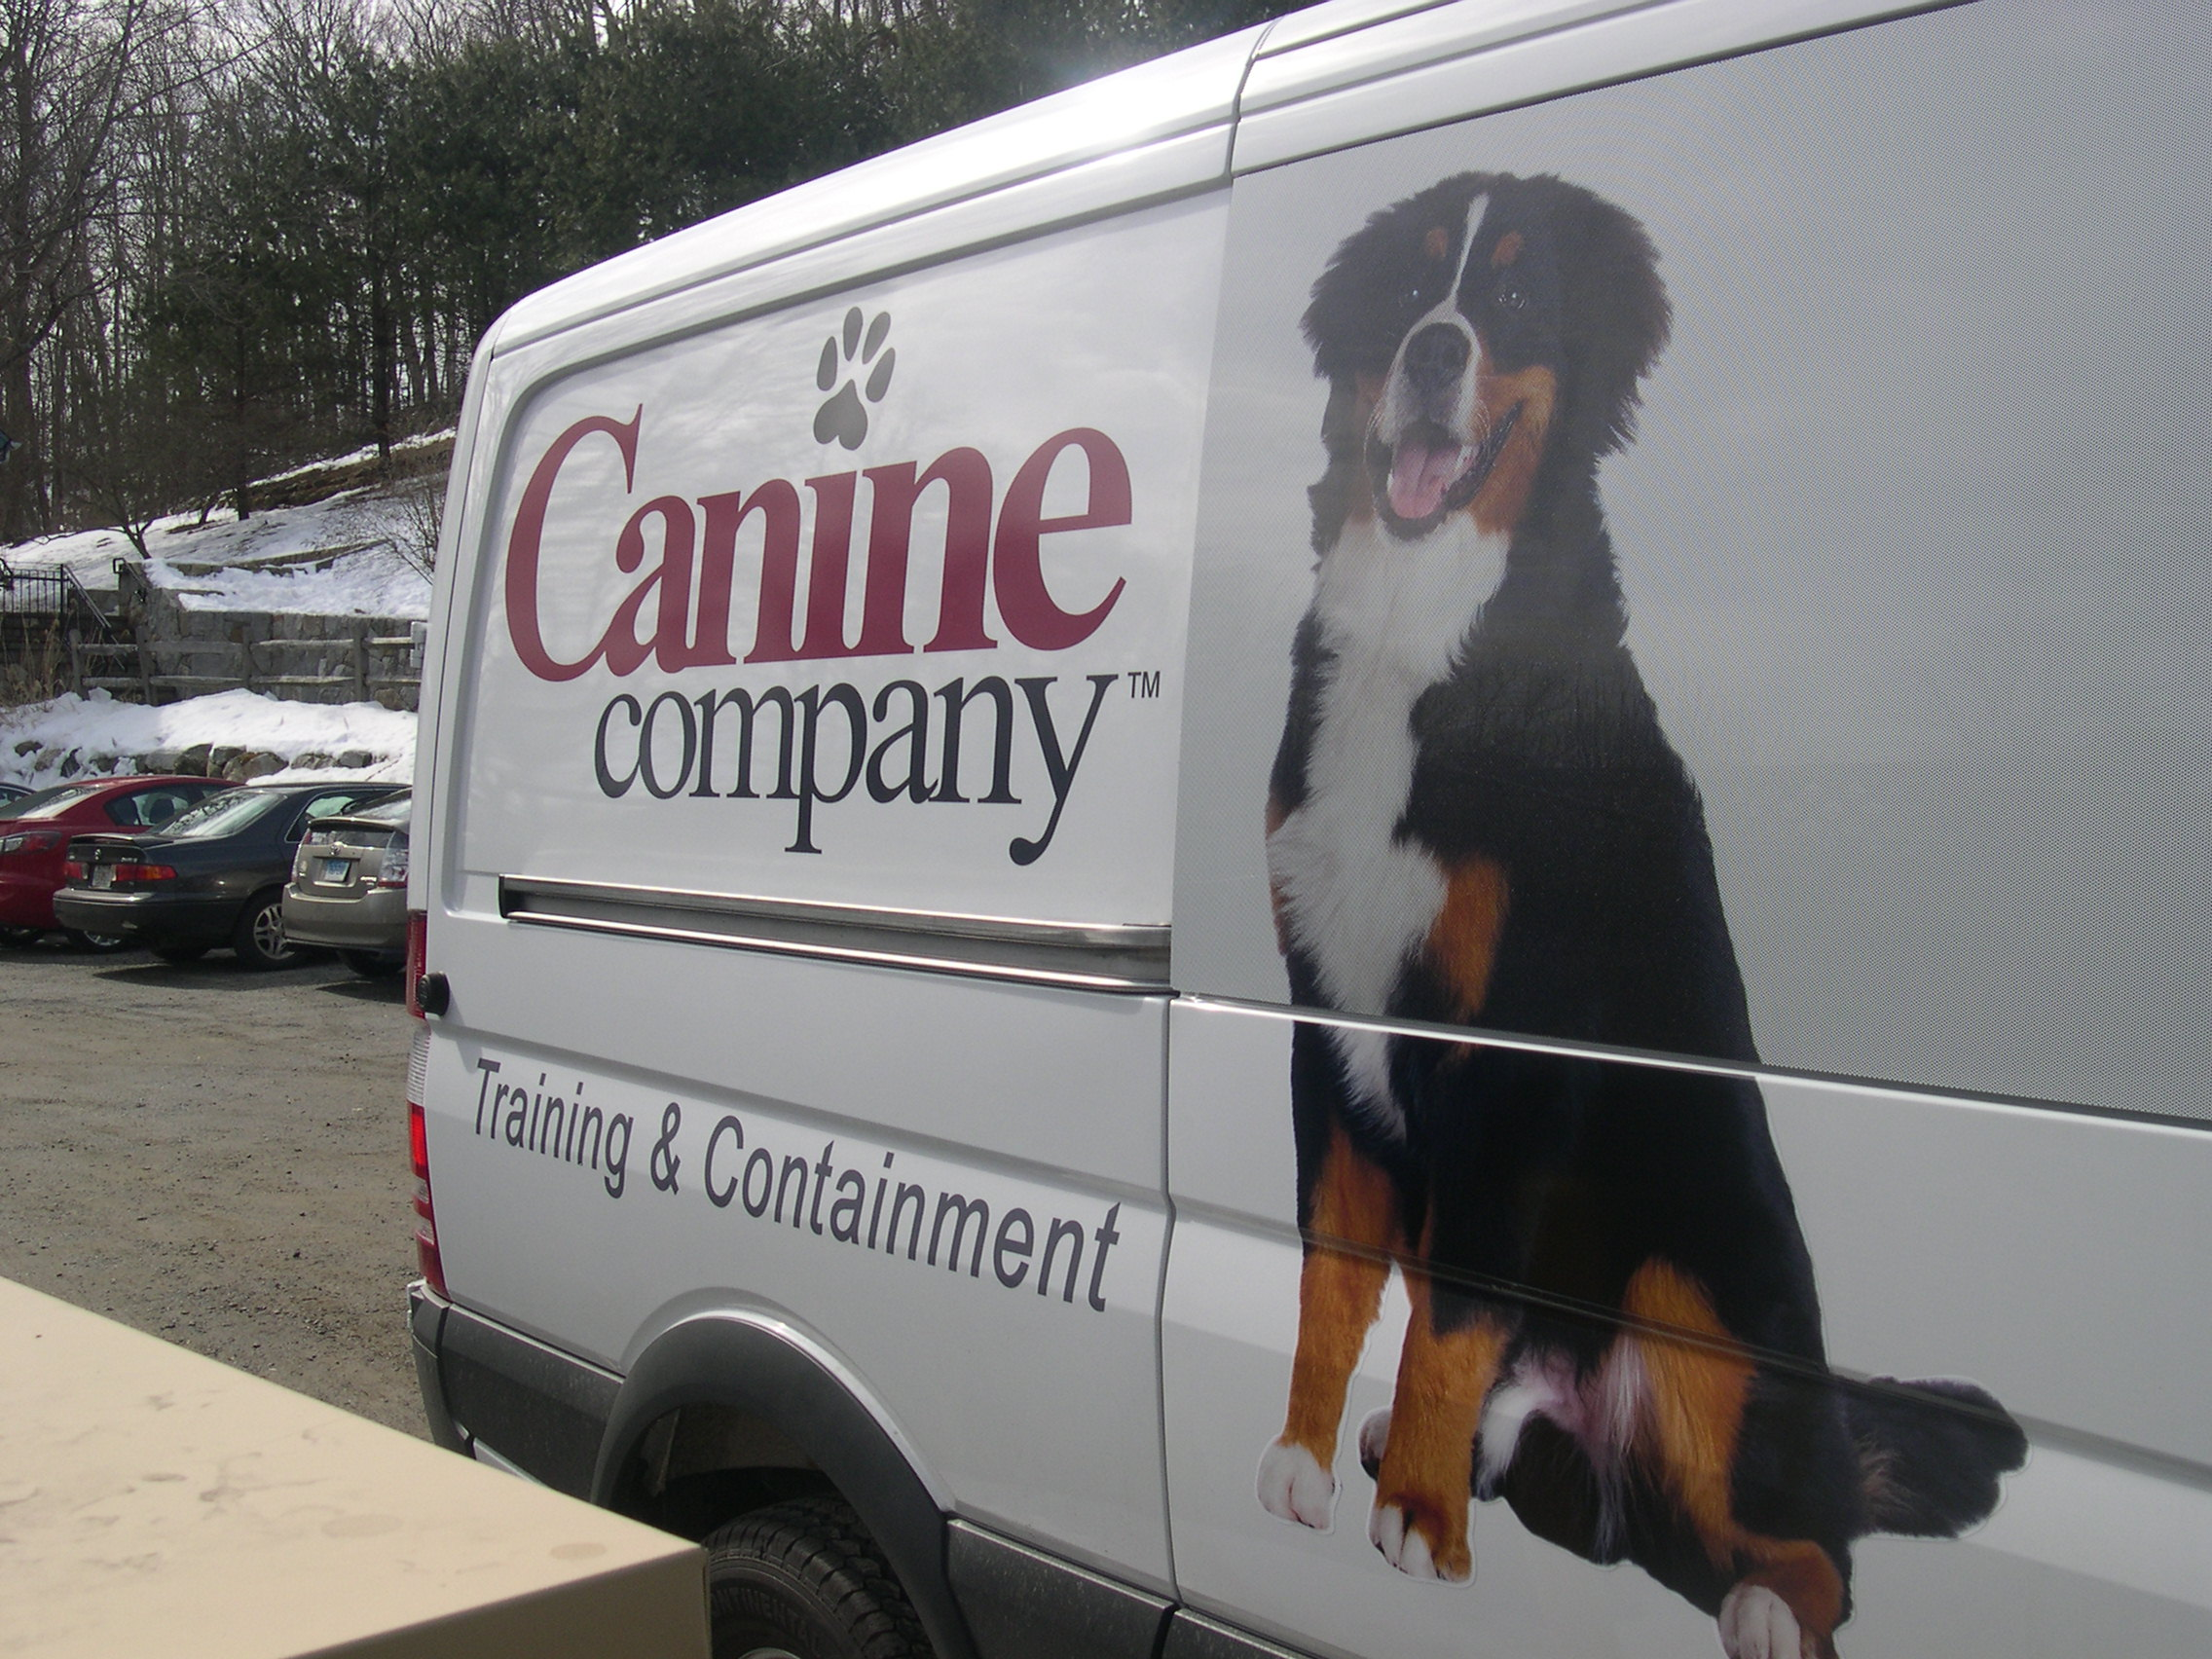 Canine Company Facilitates Rebranding With Car Decals From - Unique car window decals